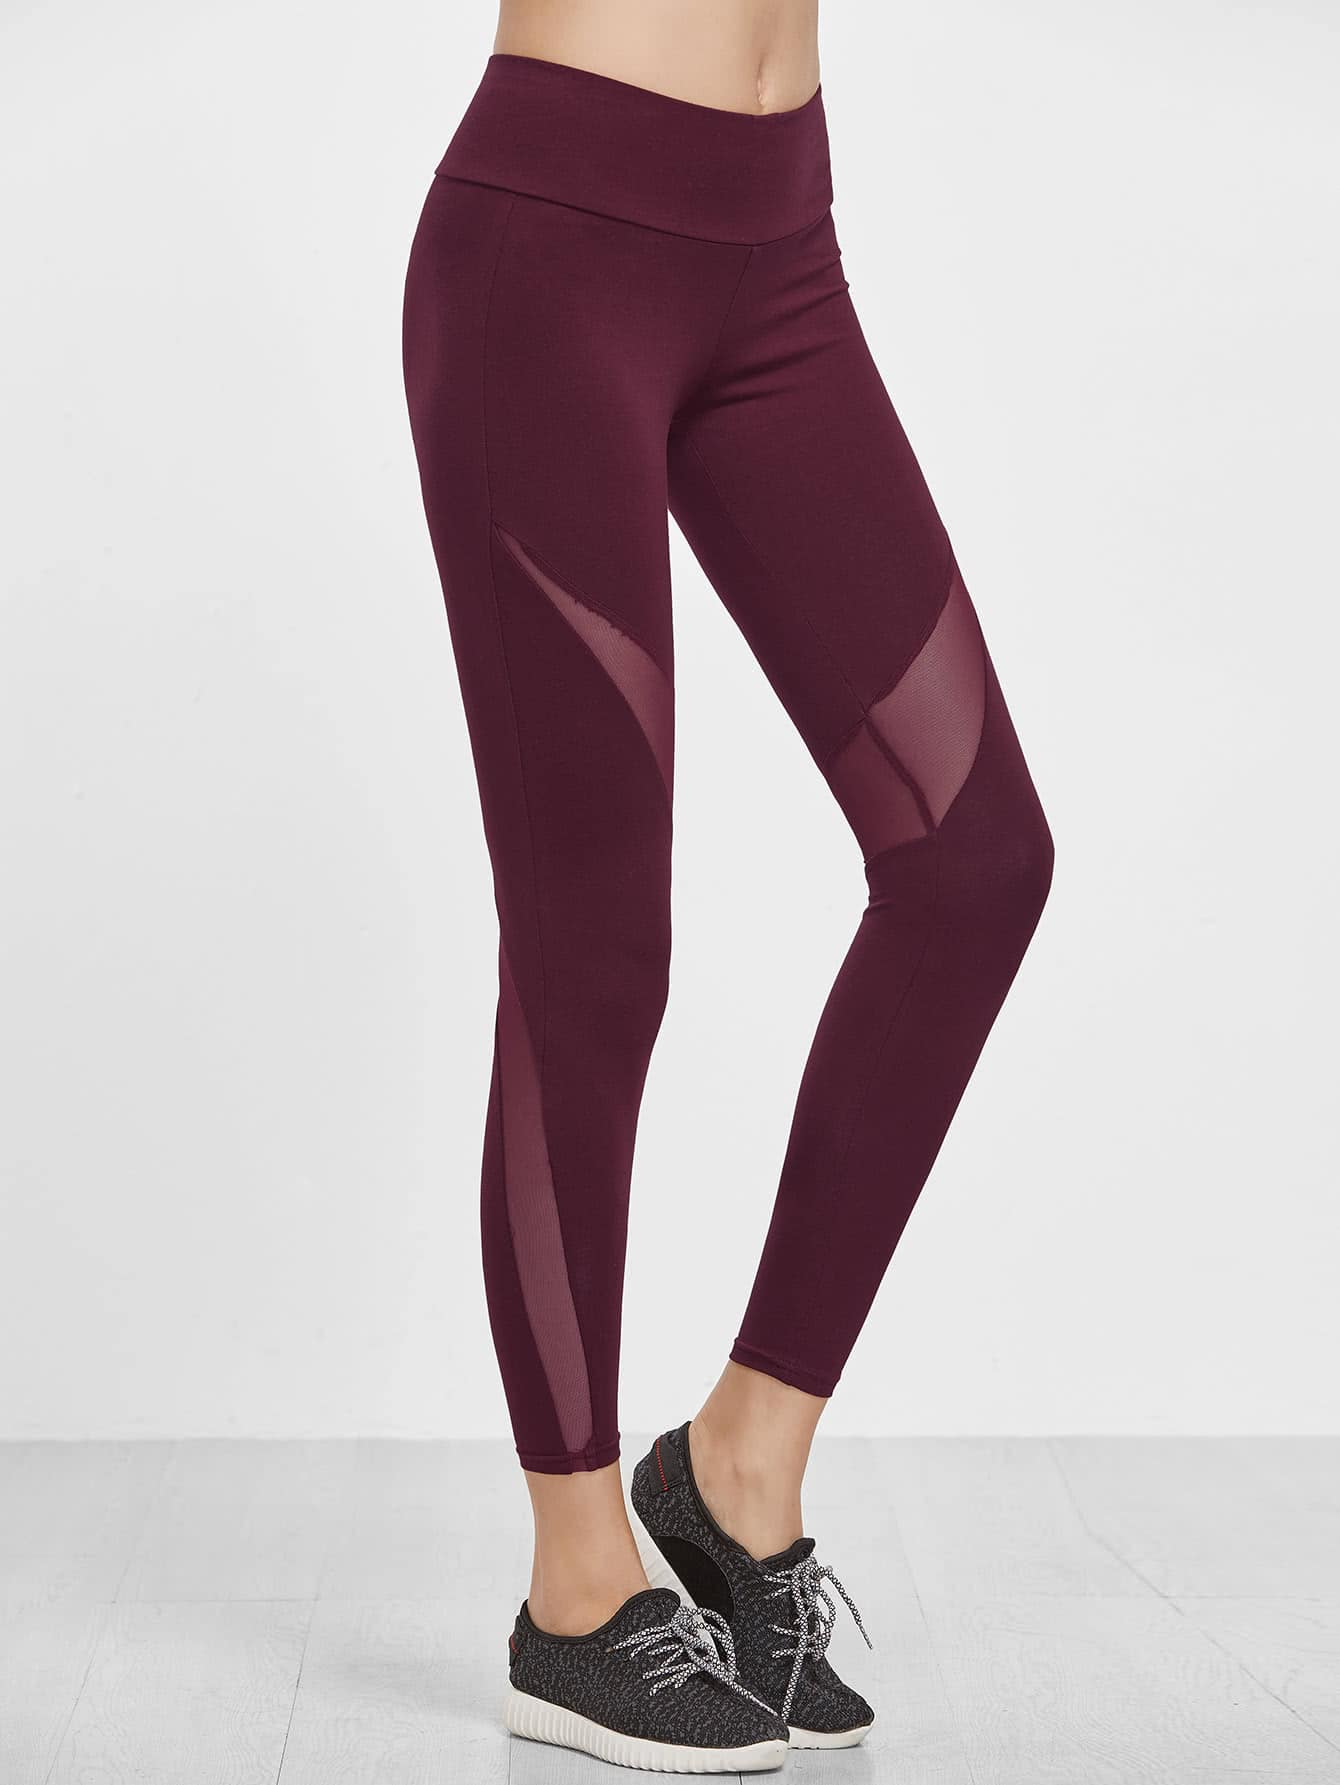 Wide Waistband Mesh Insert Leggings knit wide waistband leggings